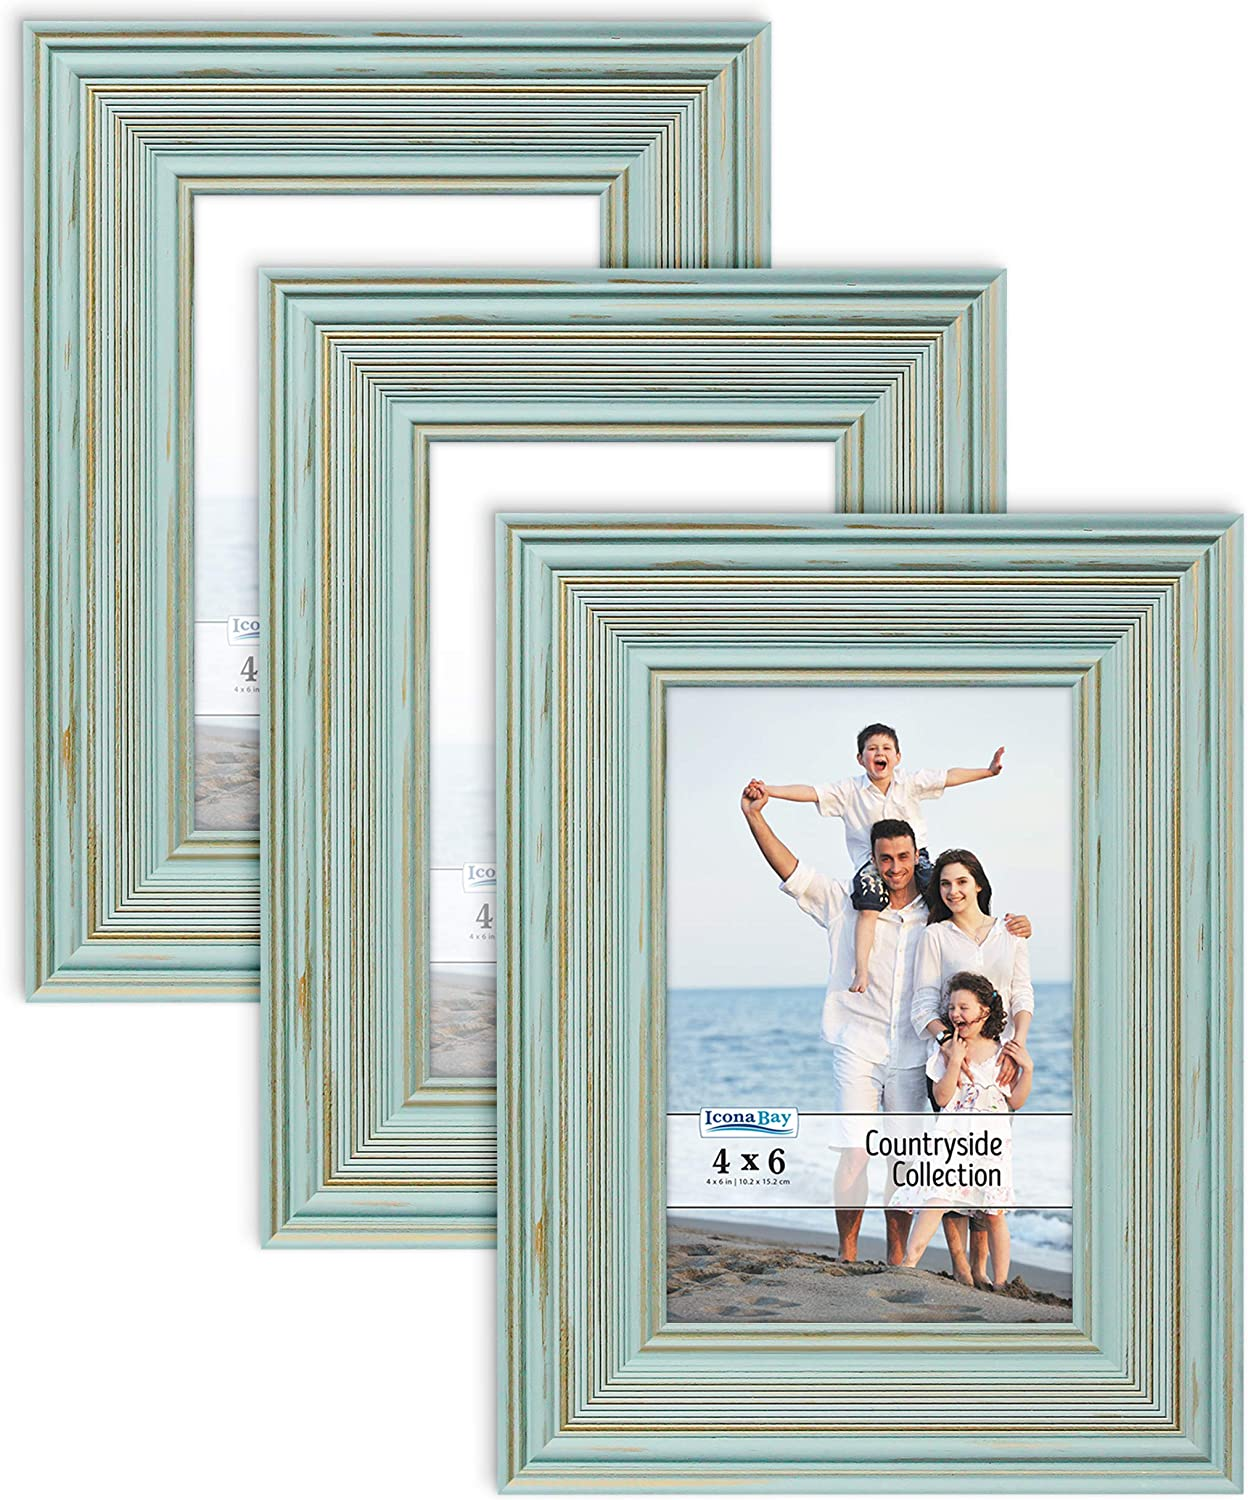 Icona Bay 4x6 Picture Frames (Eggshell Blue, 3 Pack), French Cou